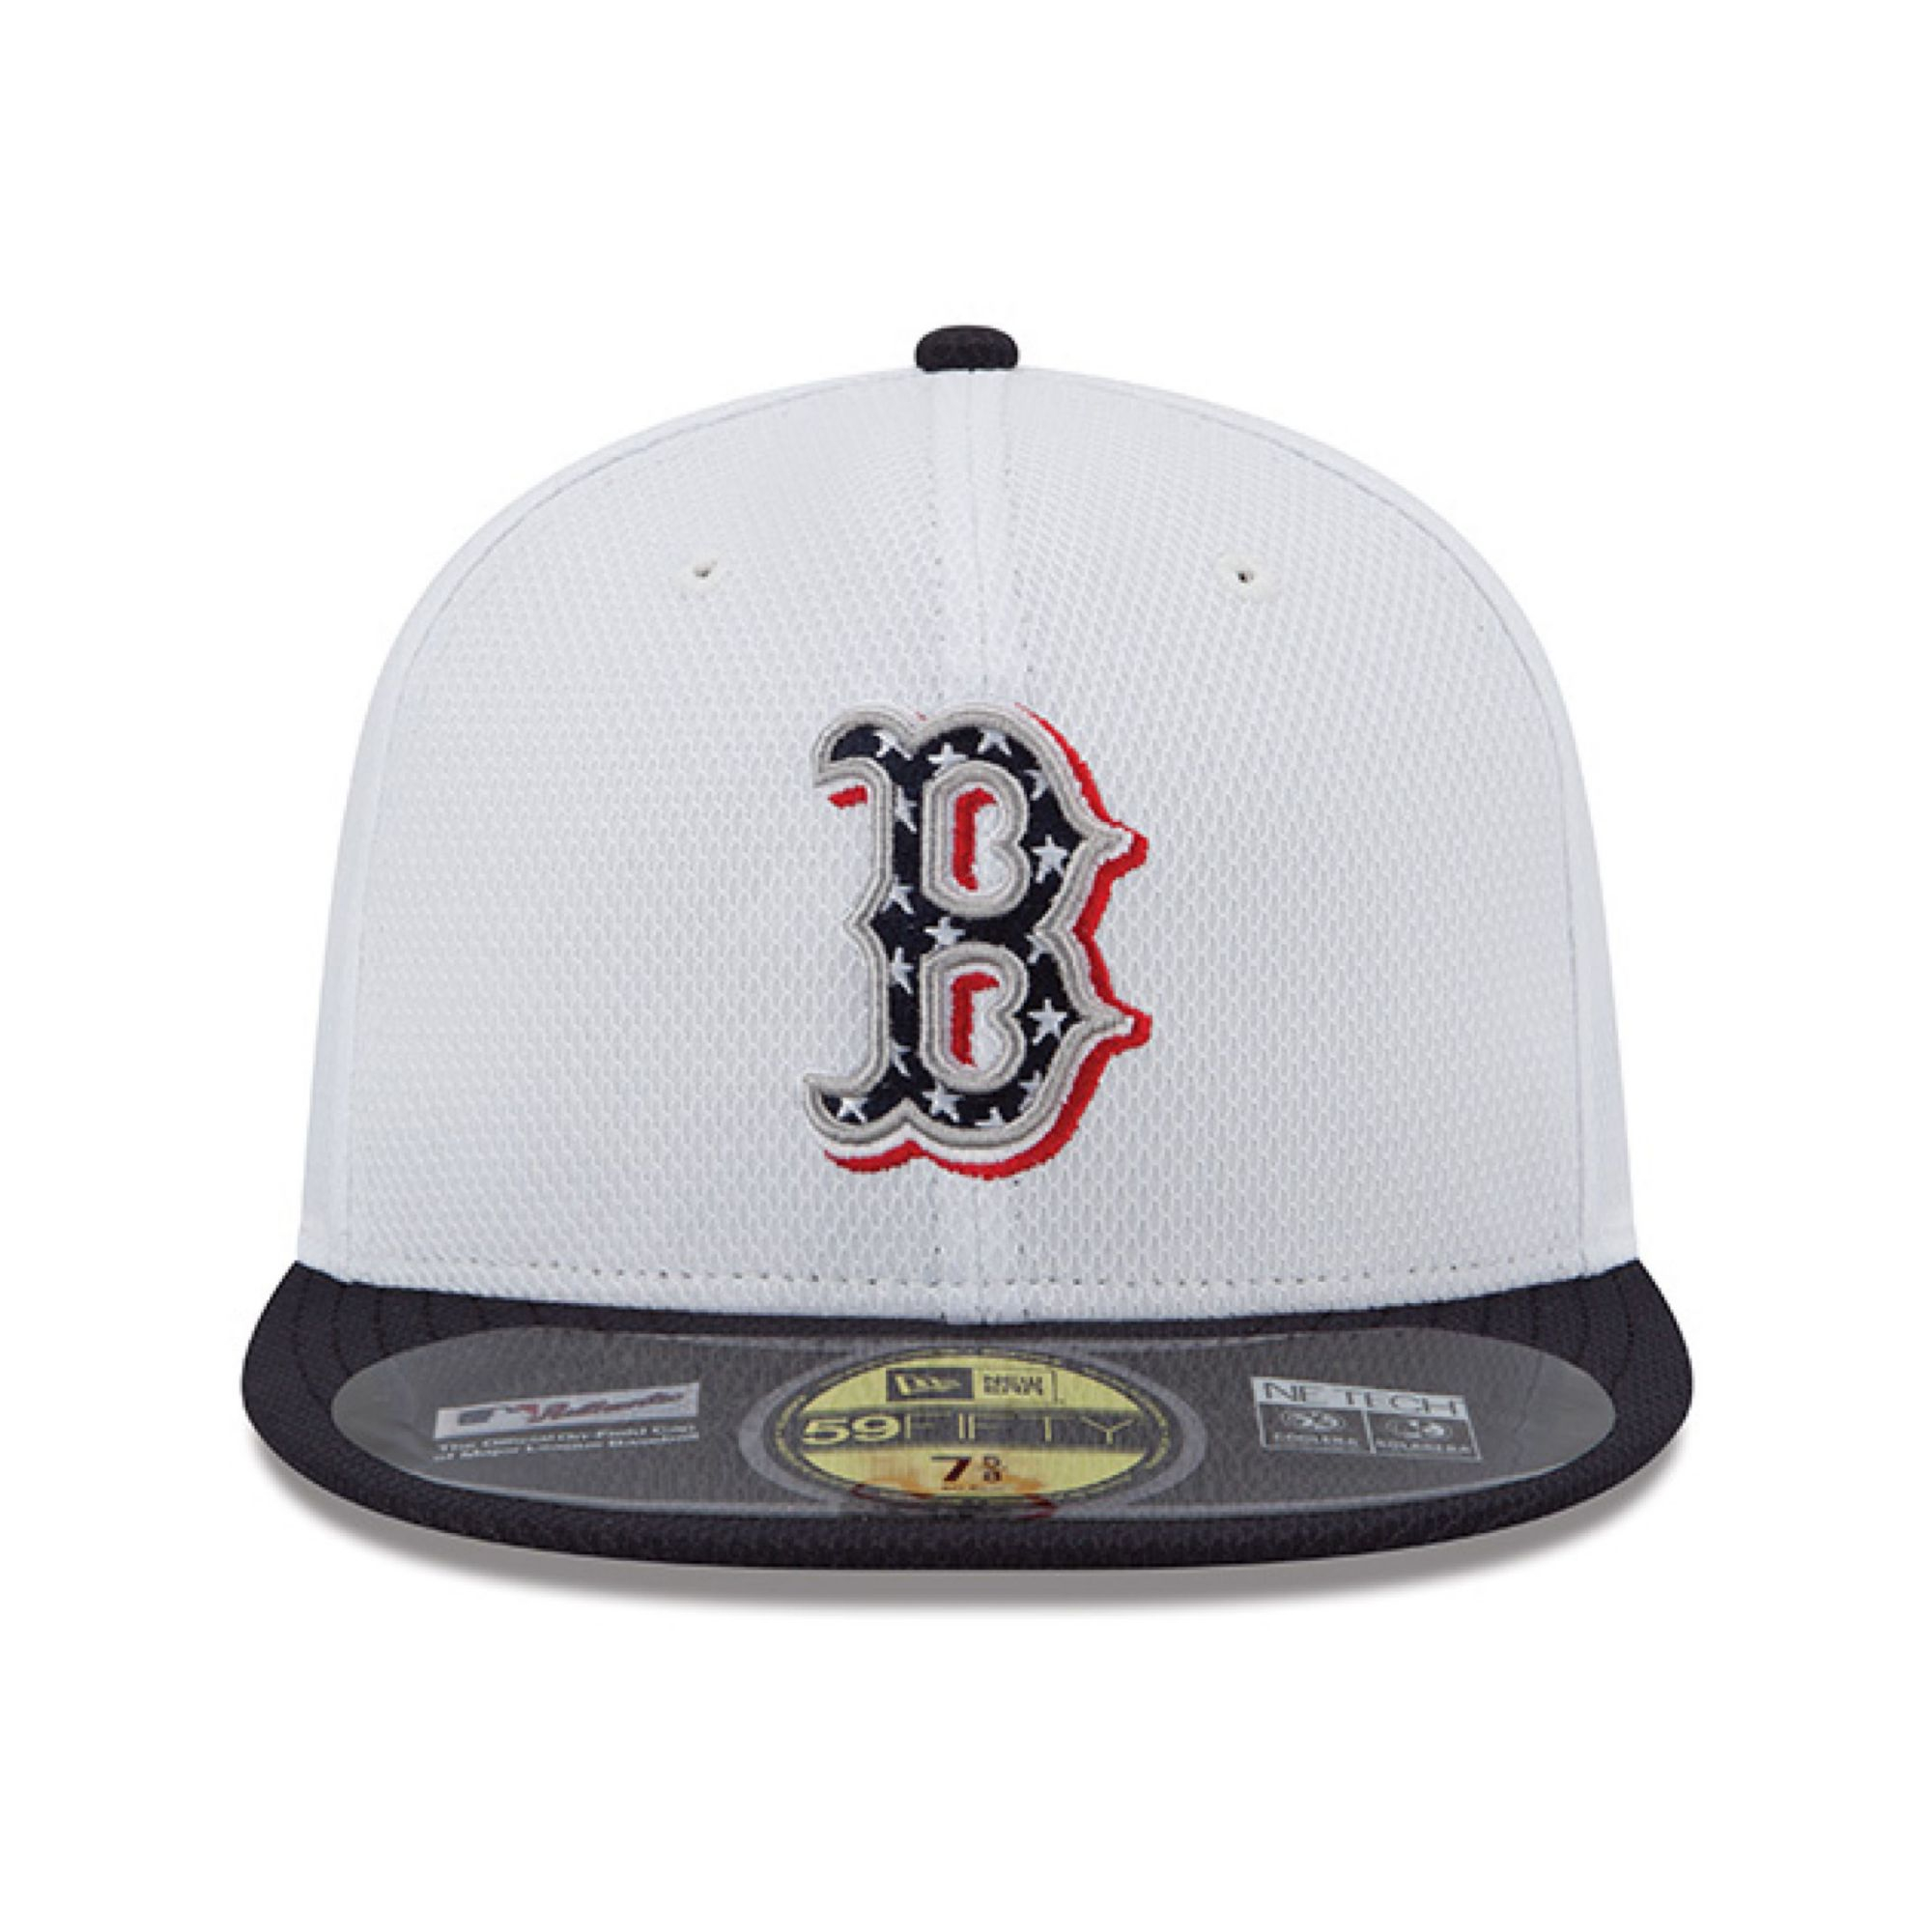 outlet store 96c49 3cac5 ... official store lyst ktz boston red sox mlb july 4th stars stripes  59fifty cap in 0dc32